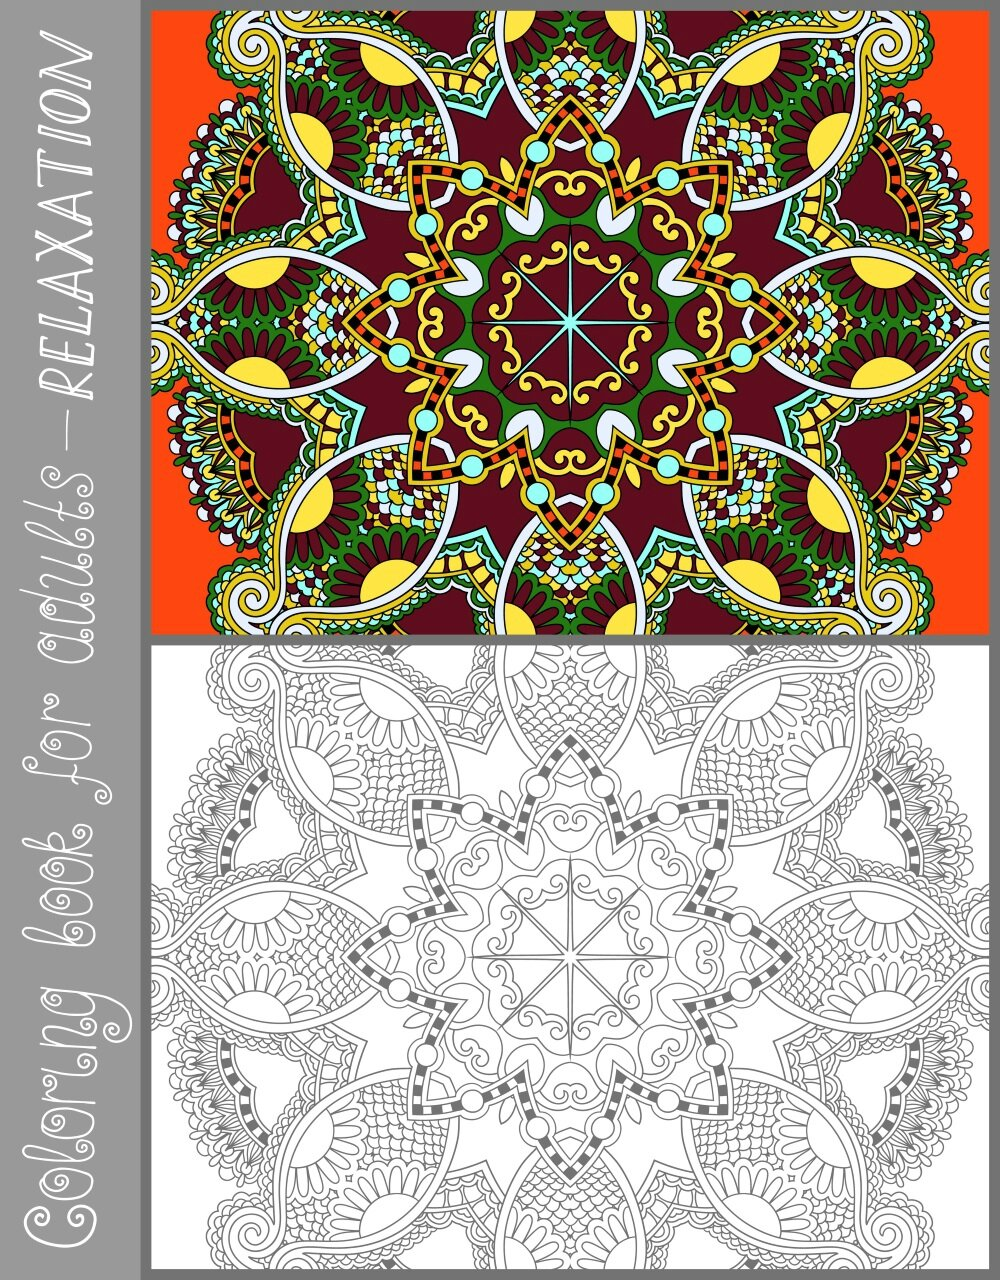 Coloriage anti stress modele - Modele coloriage ...